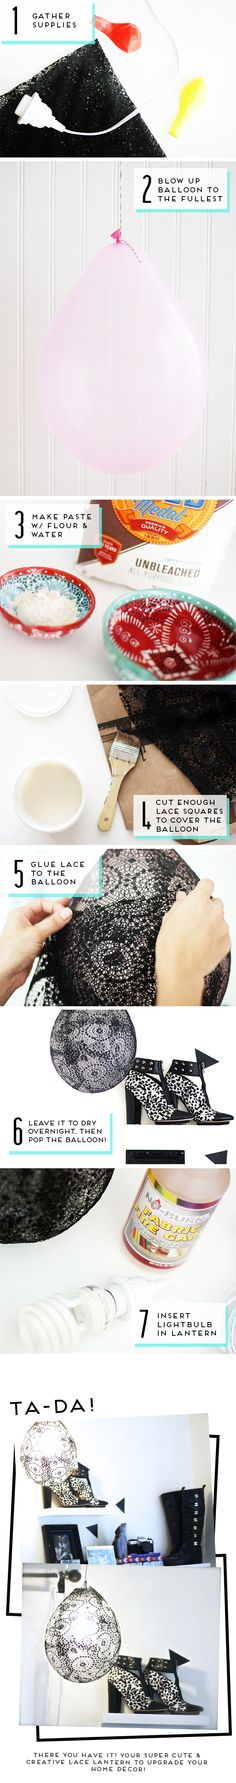 All new #DIY up on the #Lace #Lantern